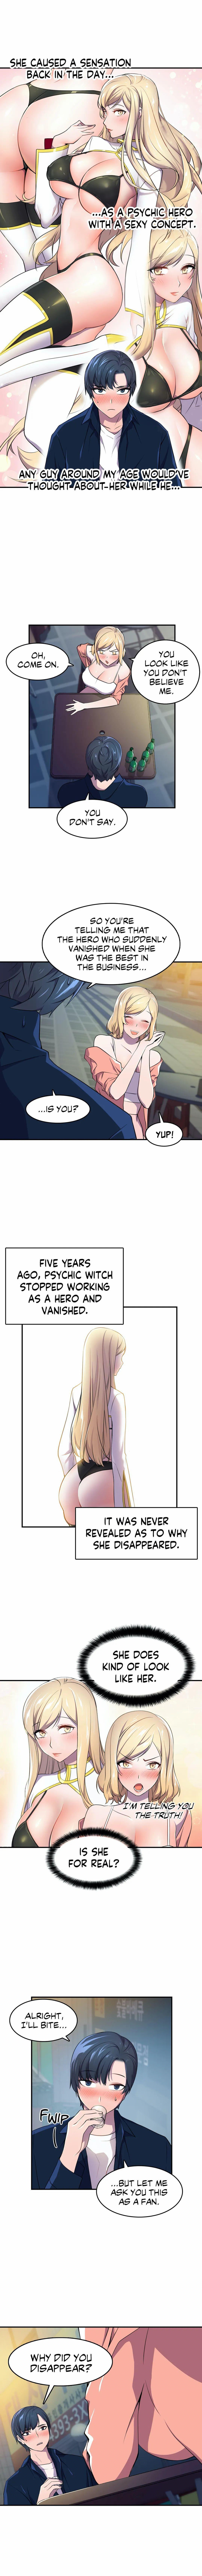 HERO MANAGER Ch. 1-15 23